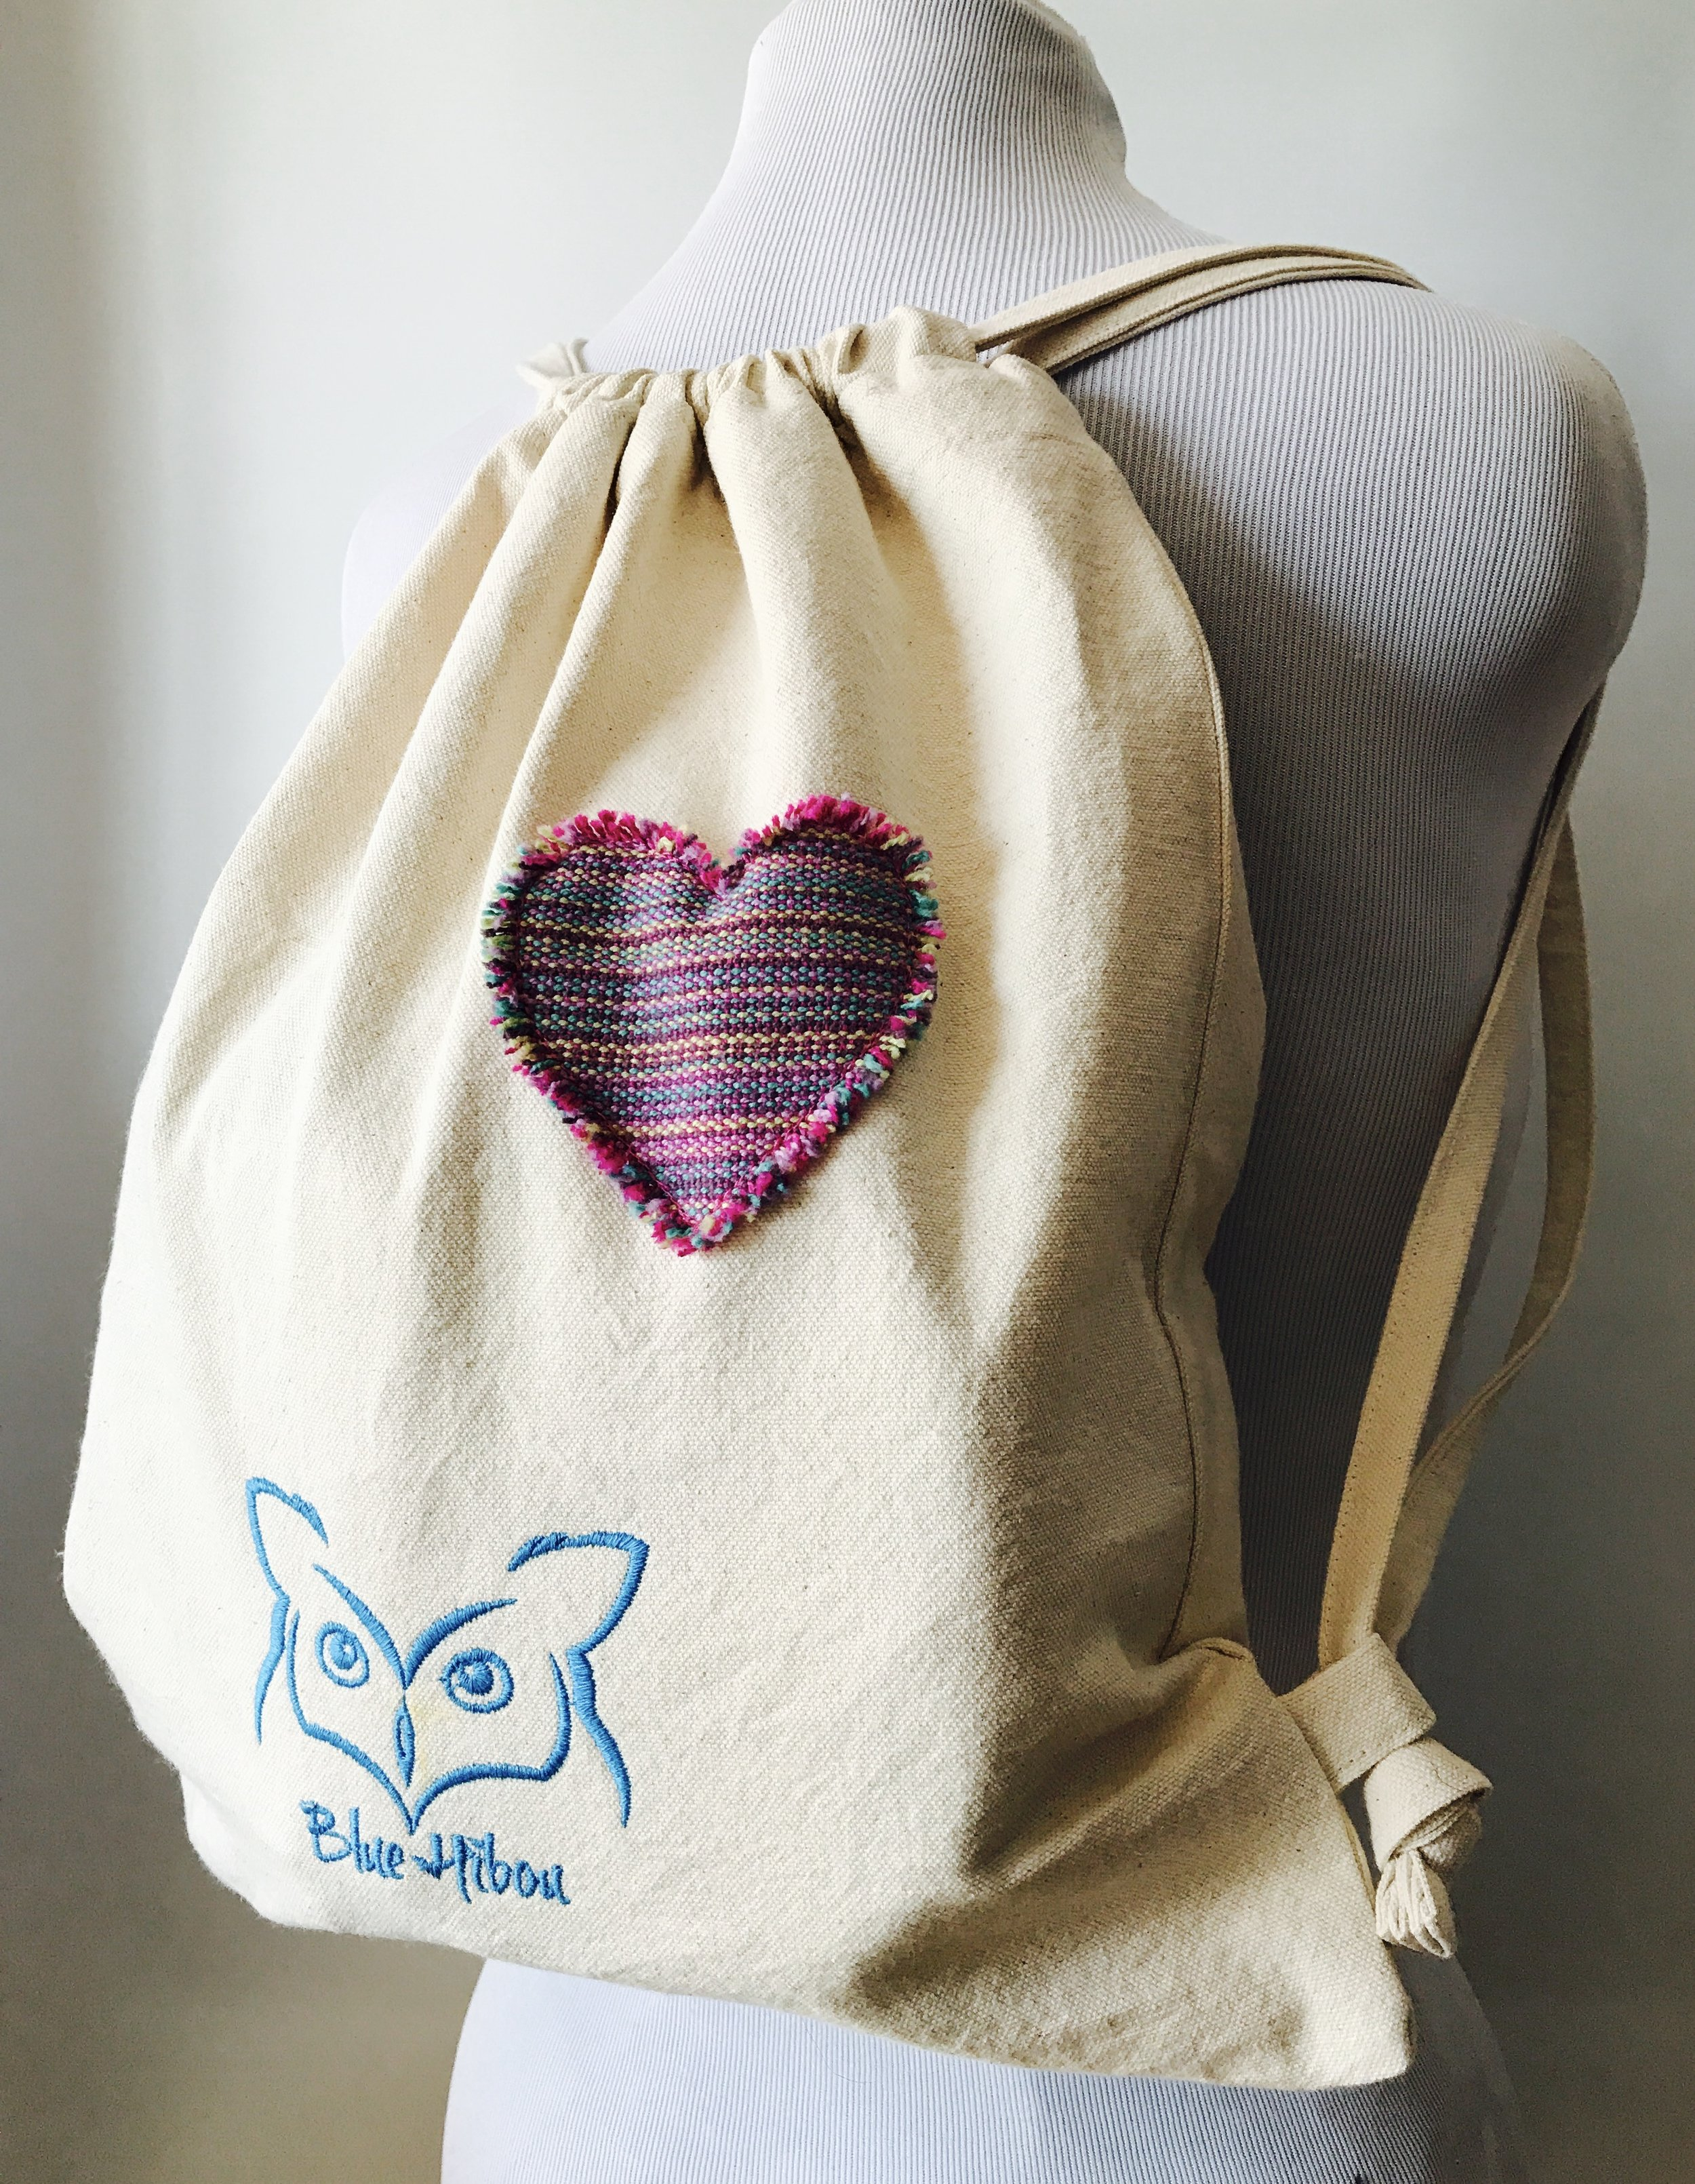 BLUE HIBOU CARRIER BAG (requires a small piece of scrap)